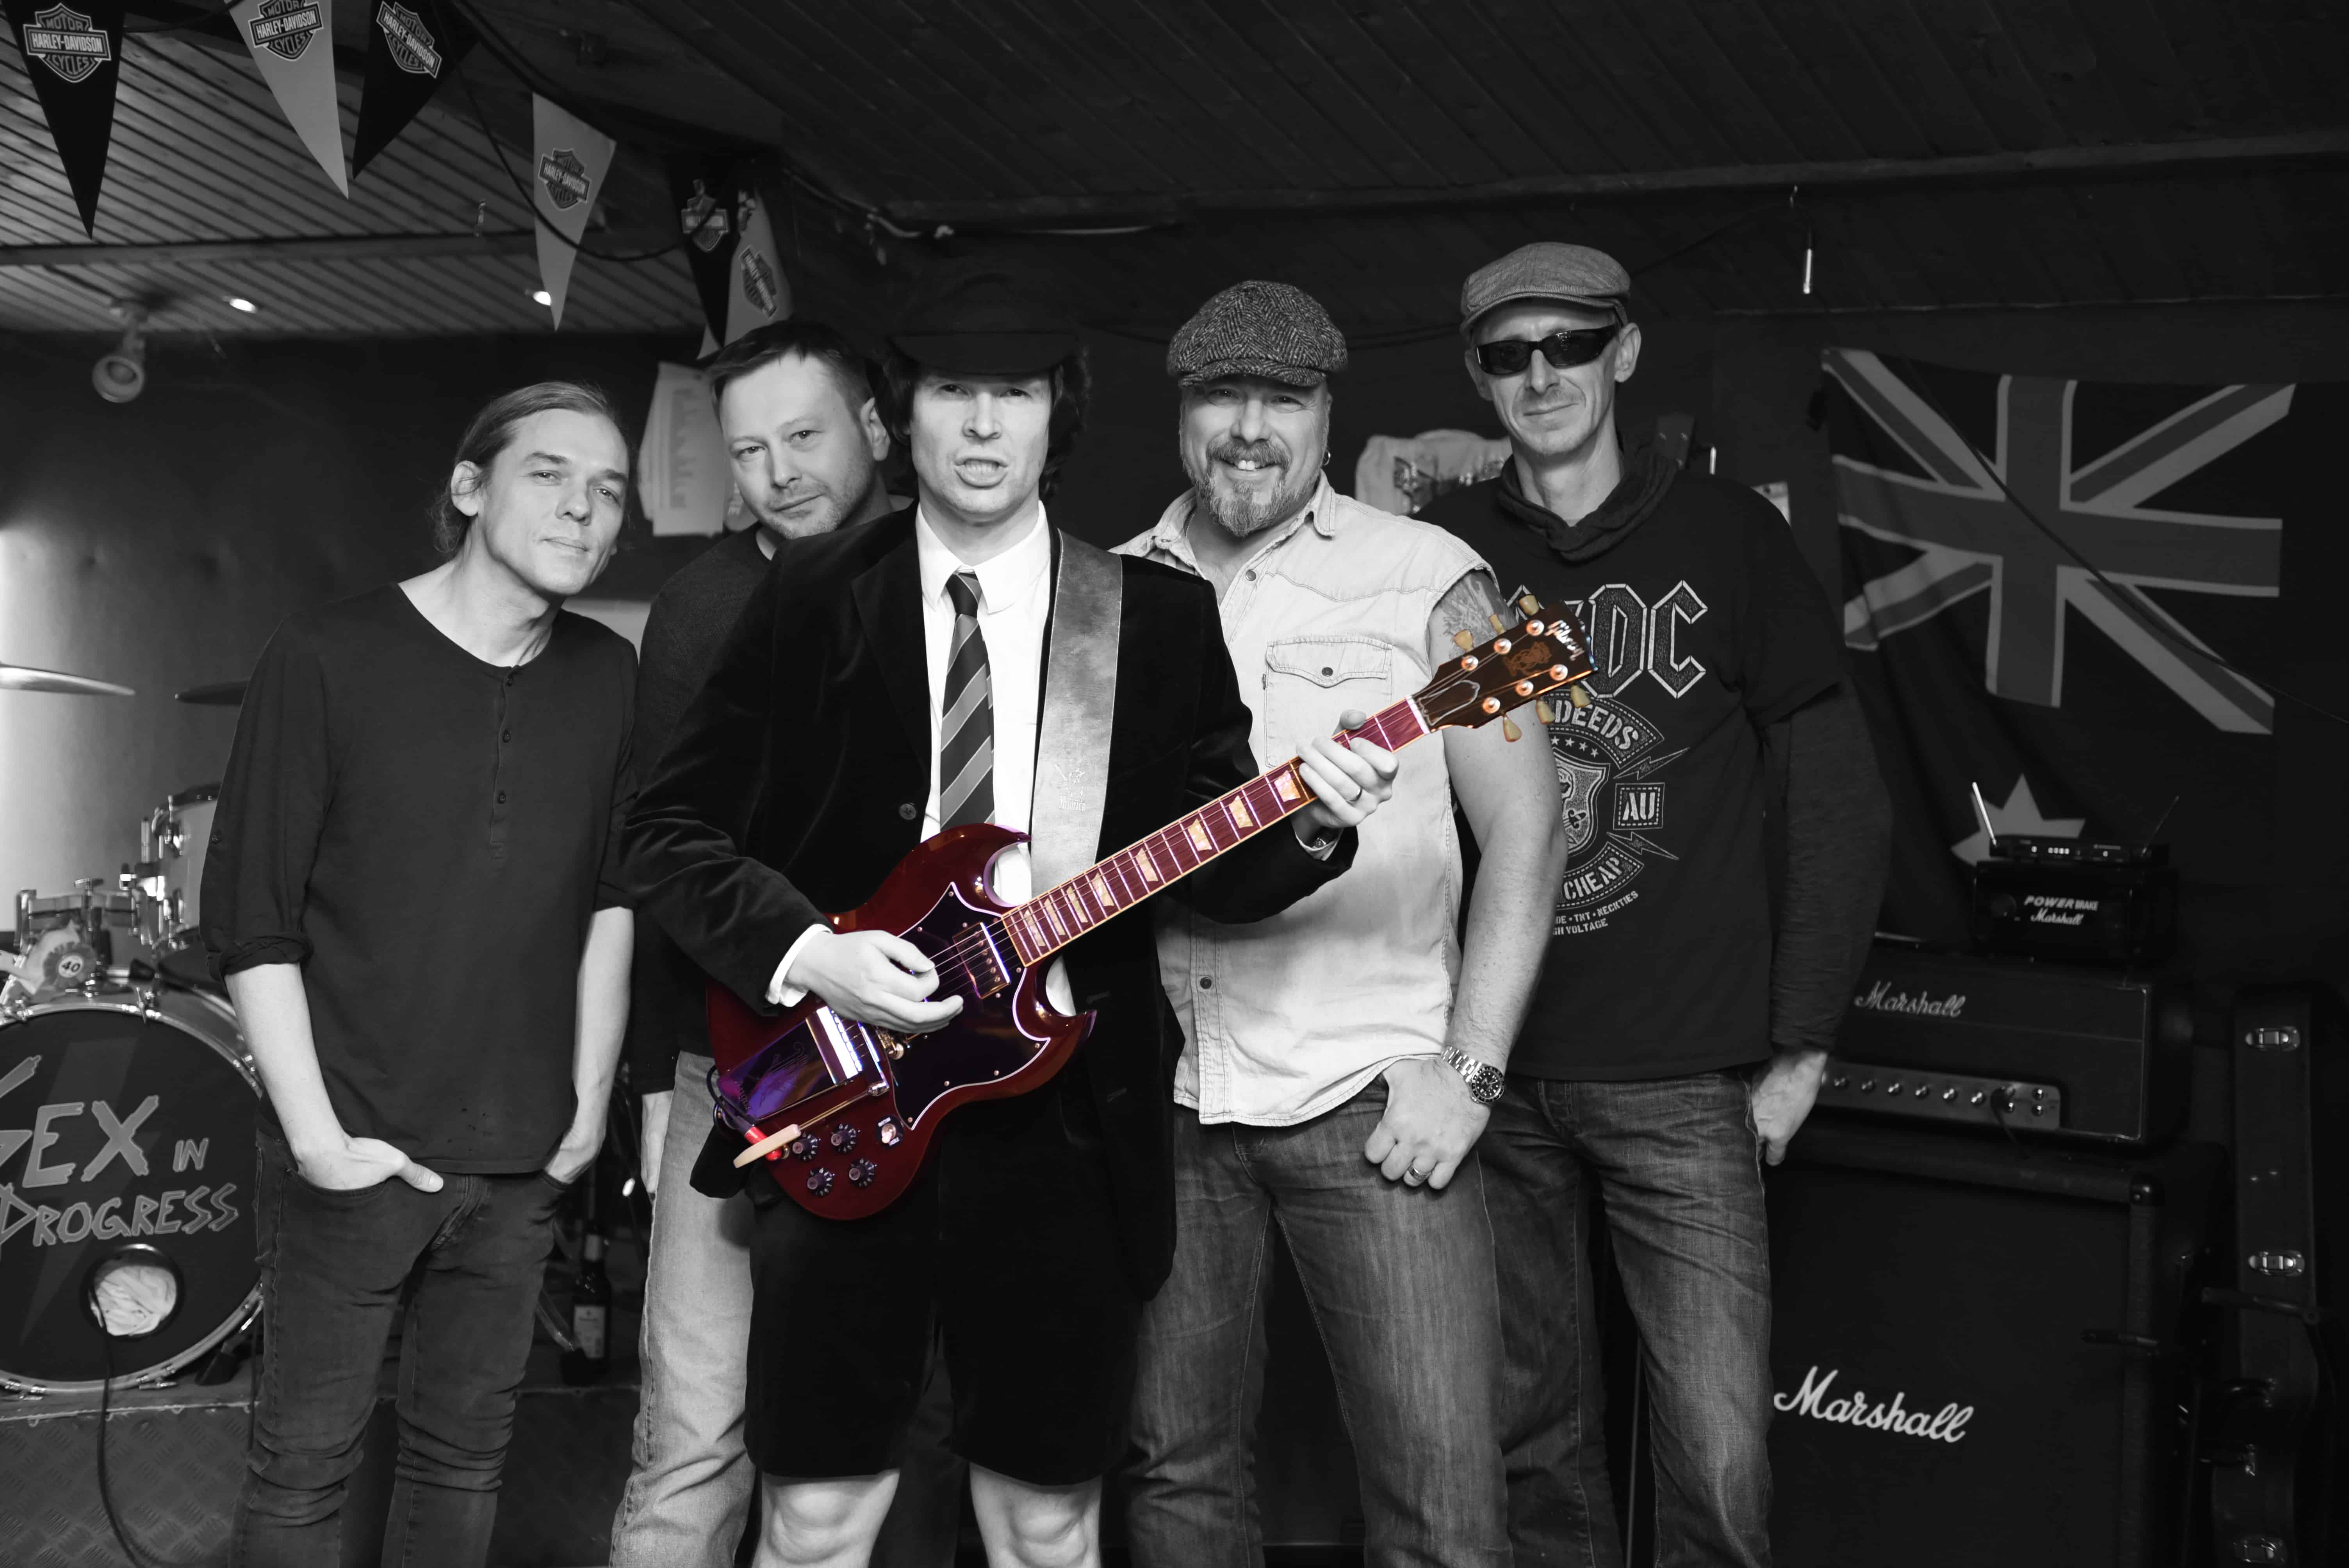 acdc tributeband coverband